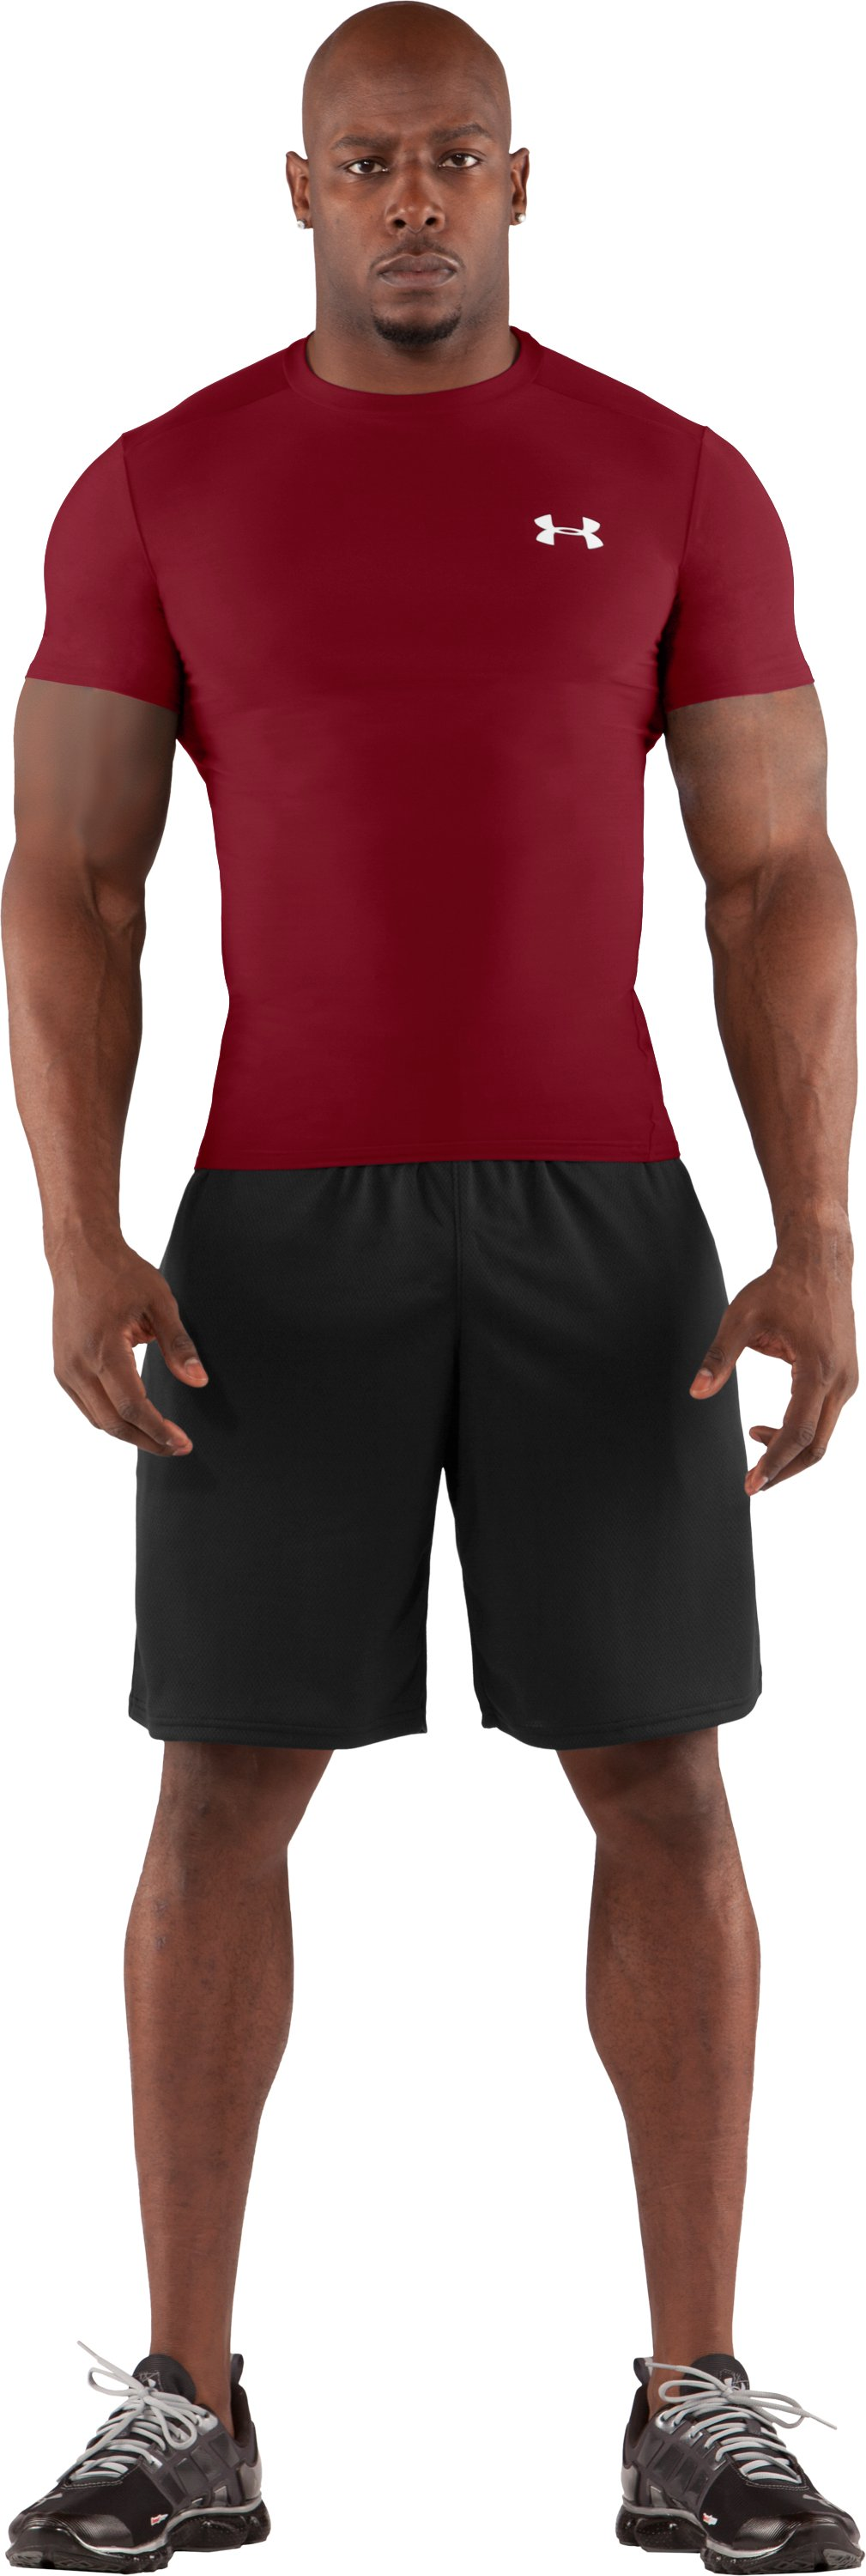 Men's HeatGear® Compression Short Sleeve T-Shirt, Crimson, Front